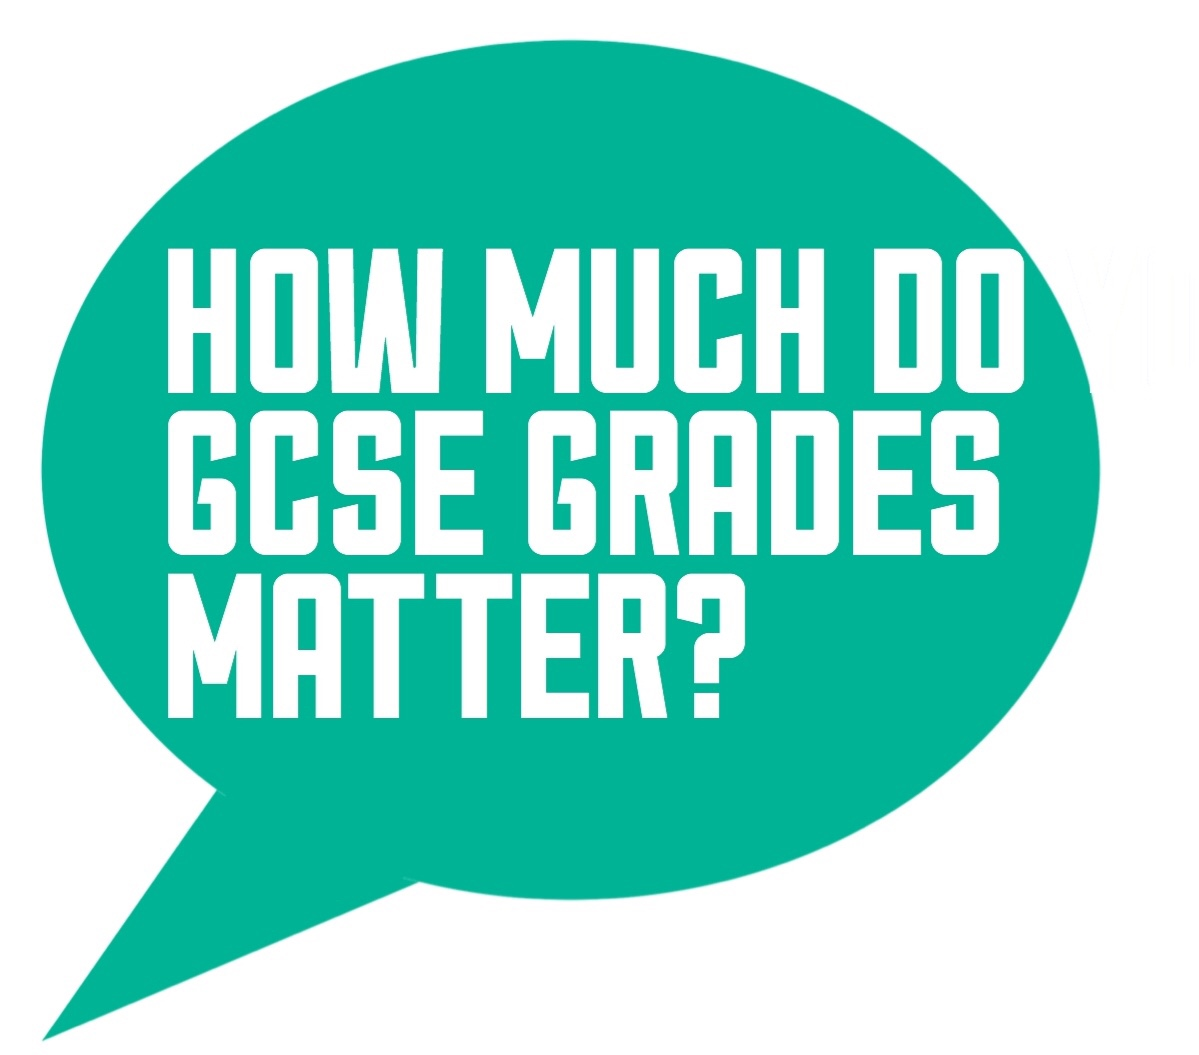 How much do GCSE grades matter?